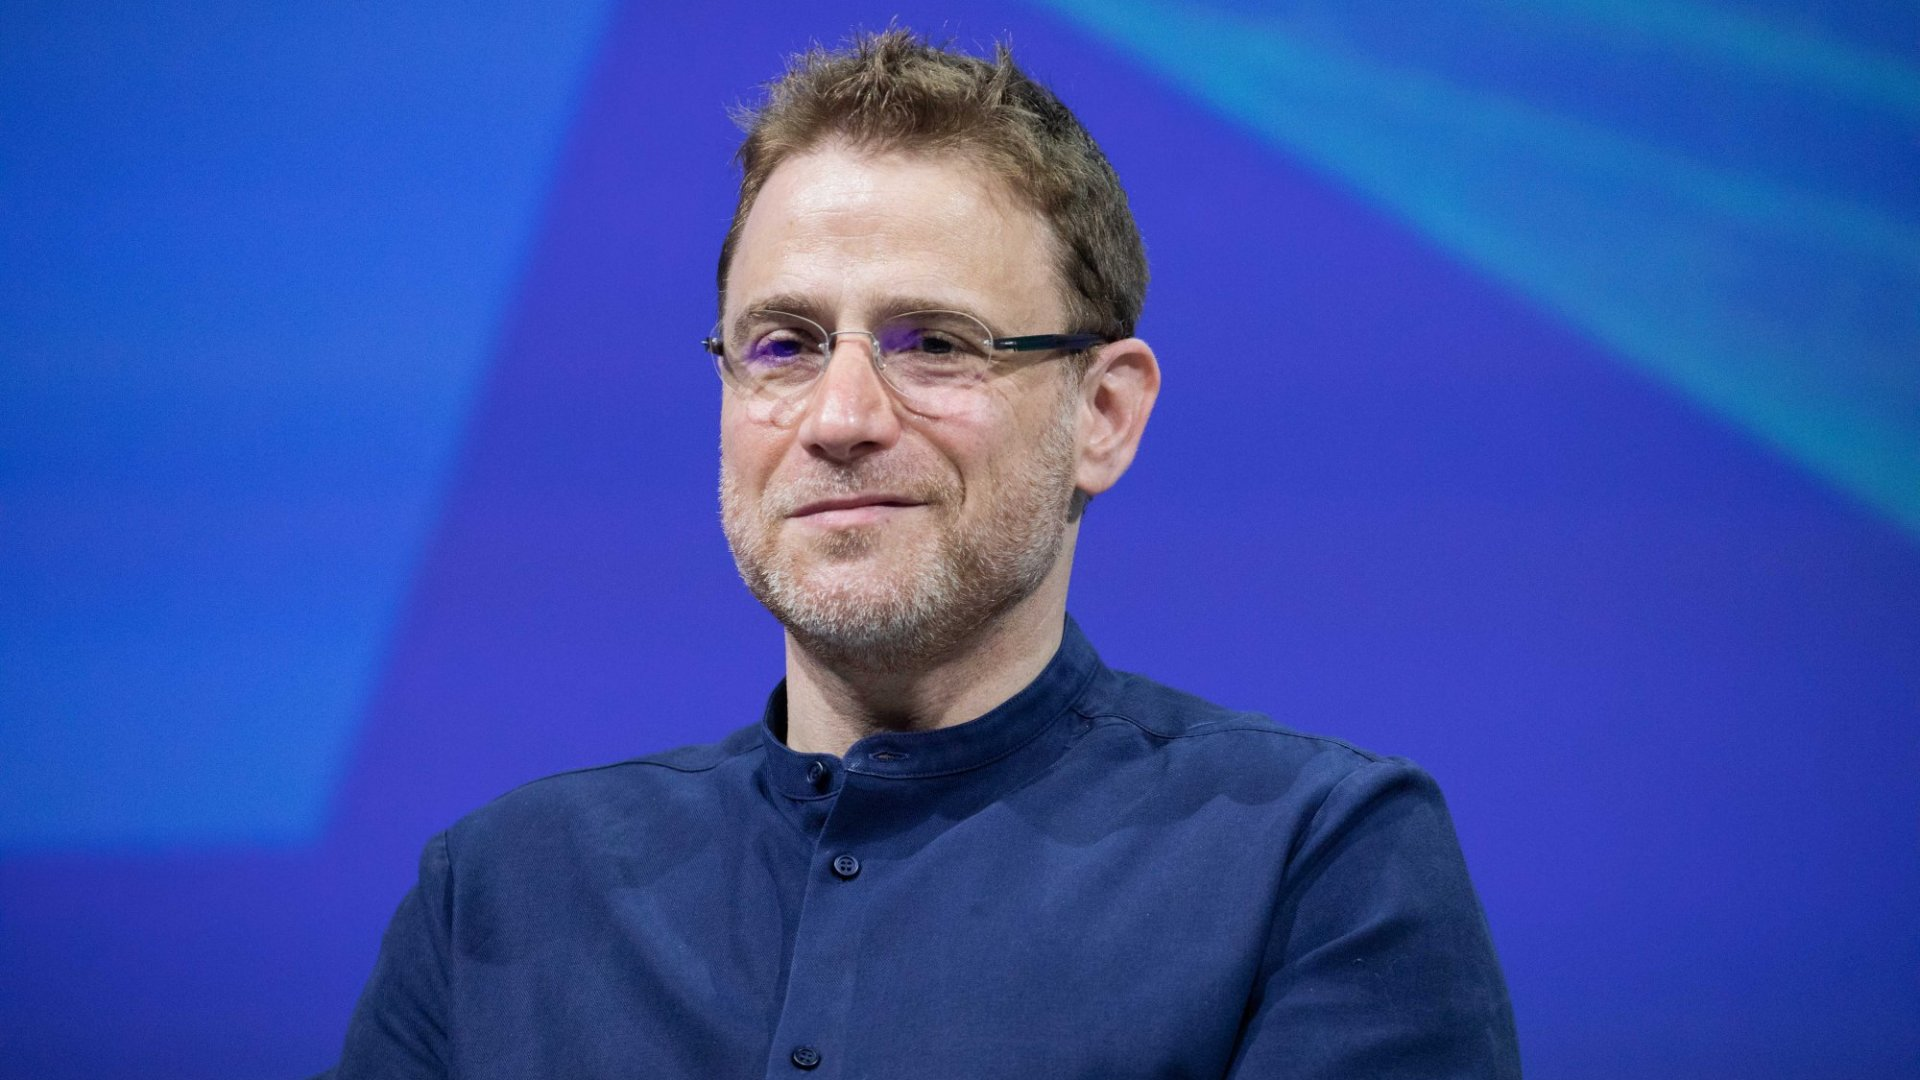 Slack Is Planning for a 2019 IPO at a $7 Billion Valuation